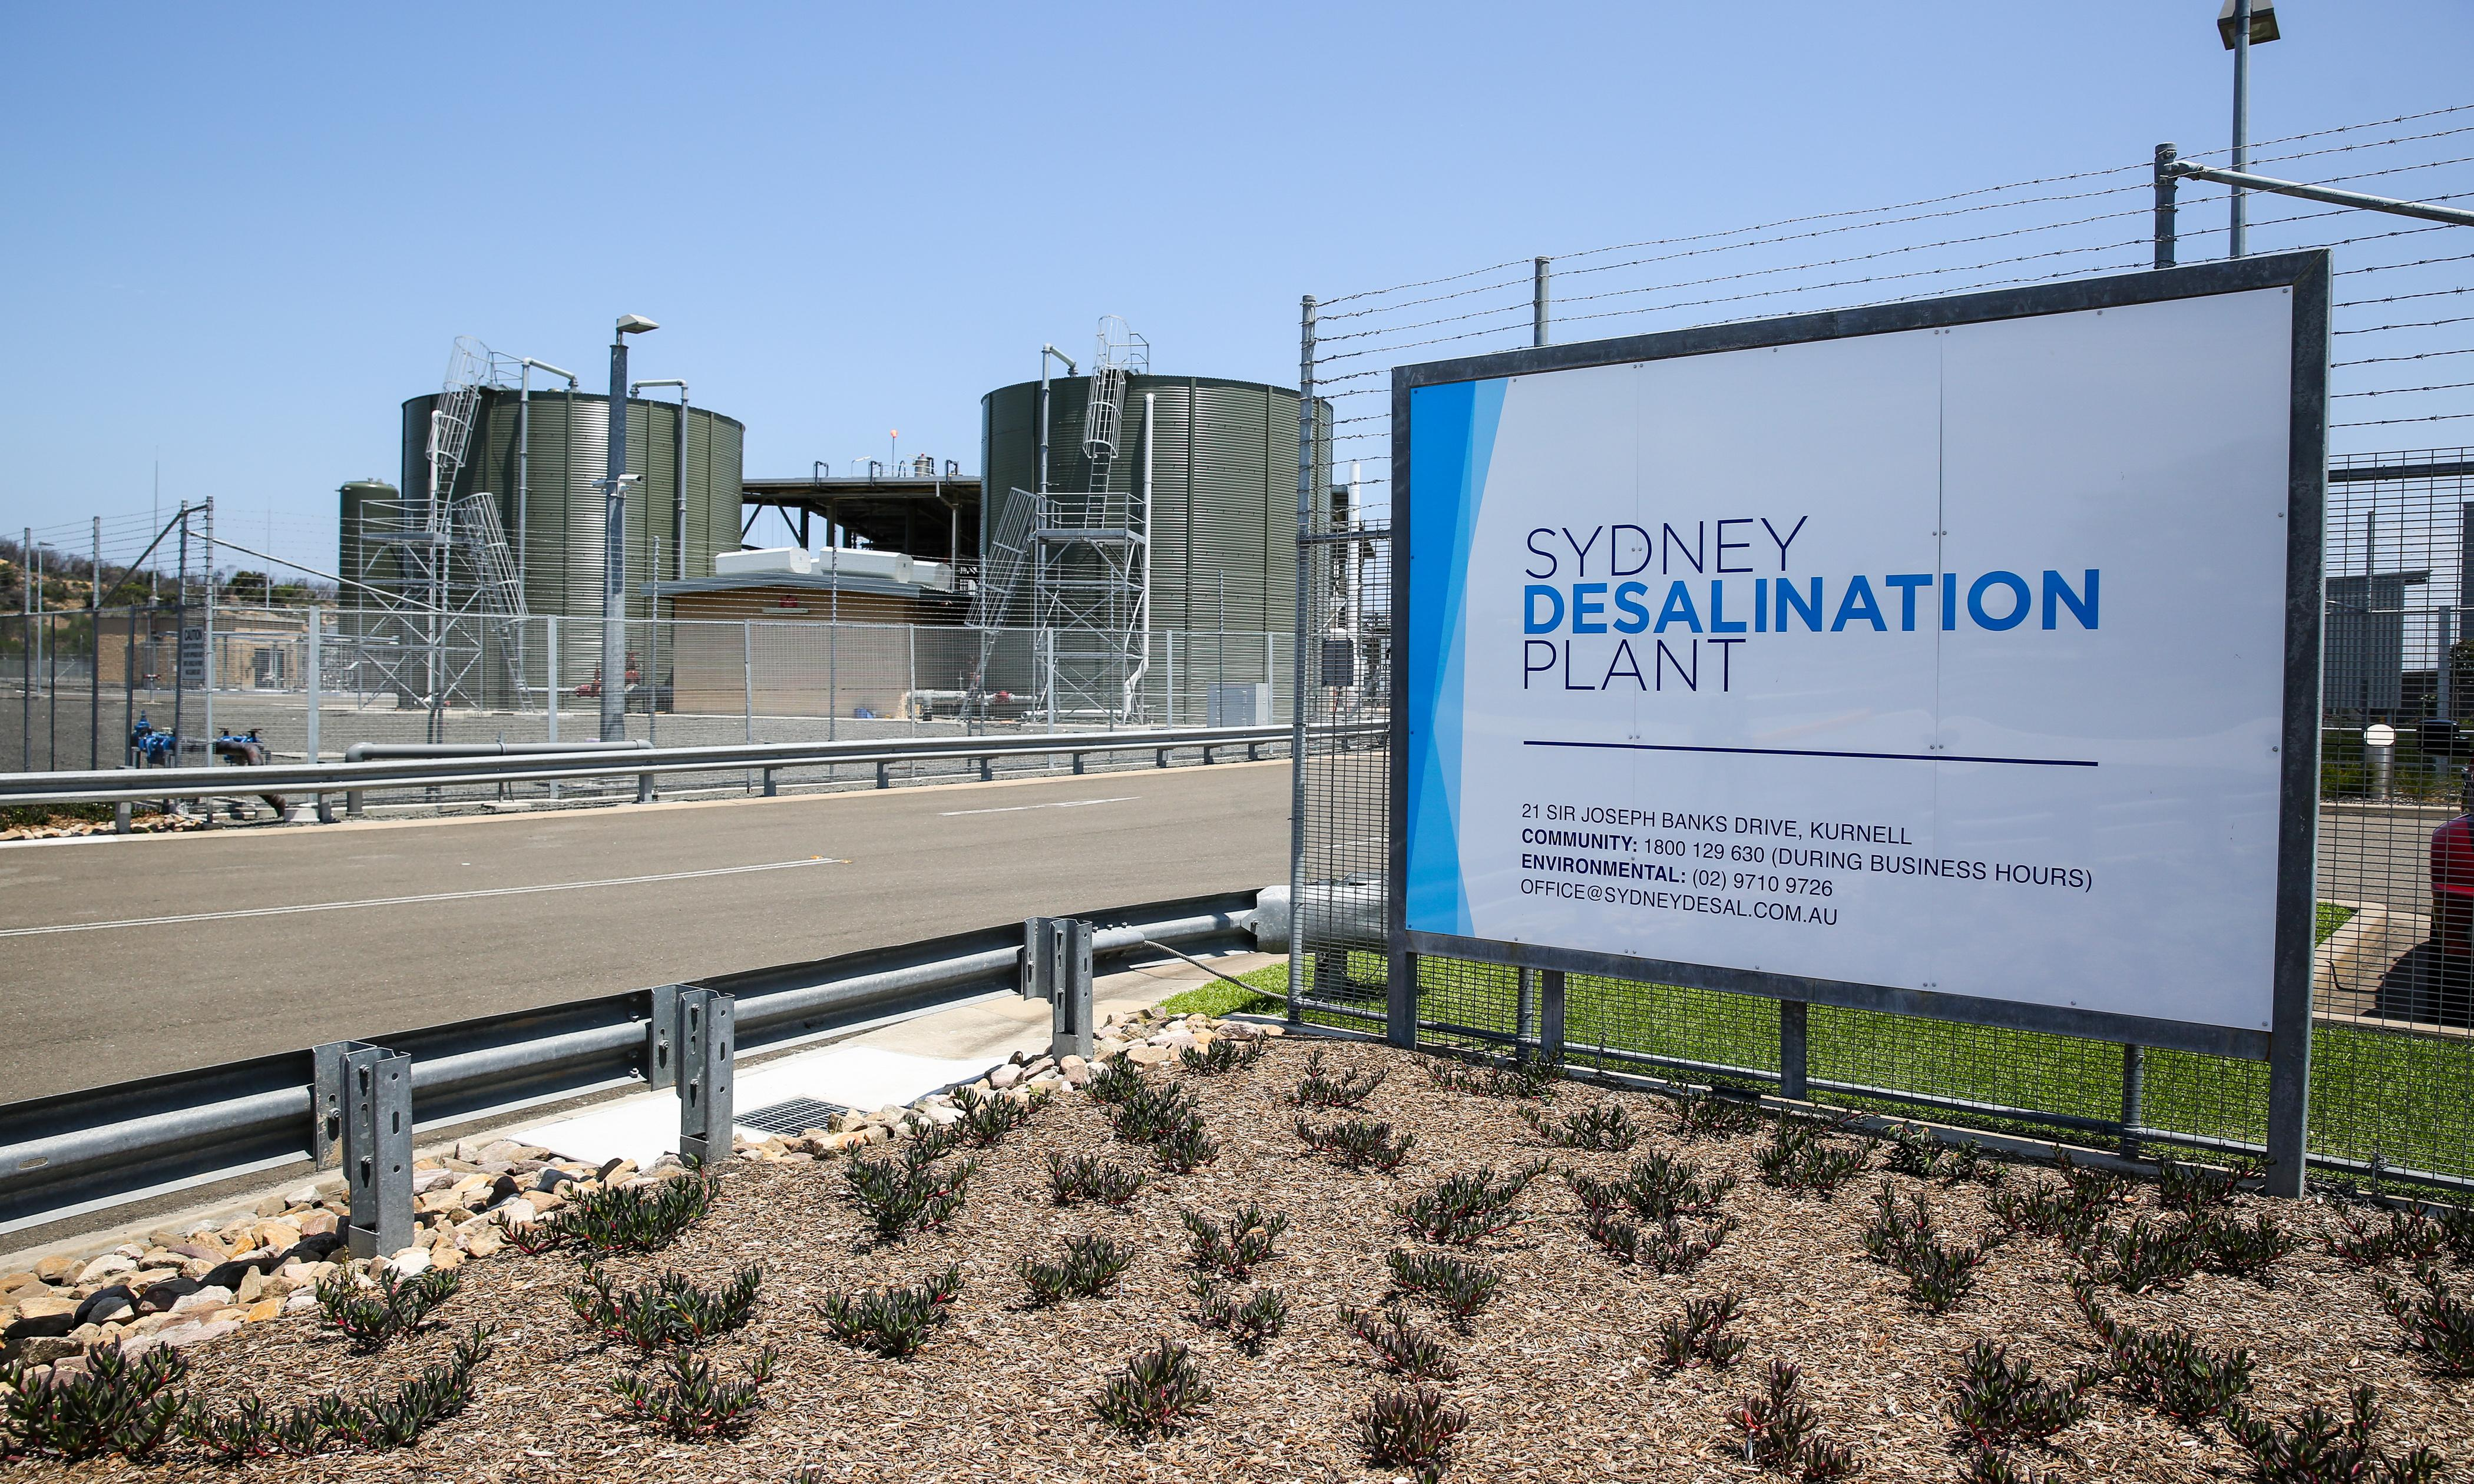 Sydney's desalination plant set to expand as drought continues